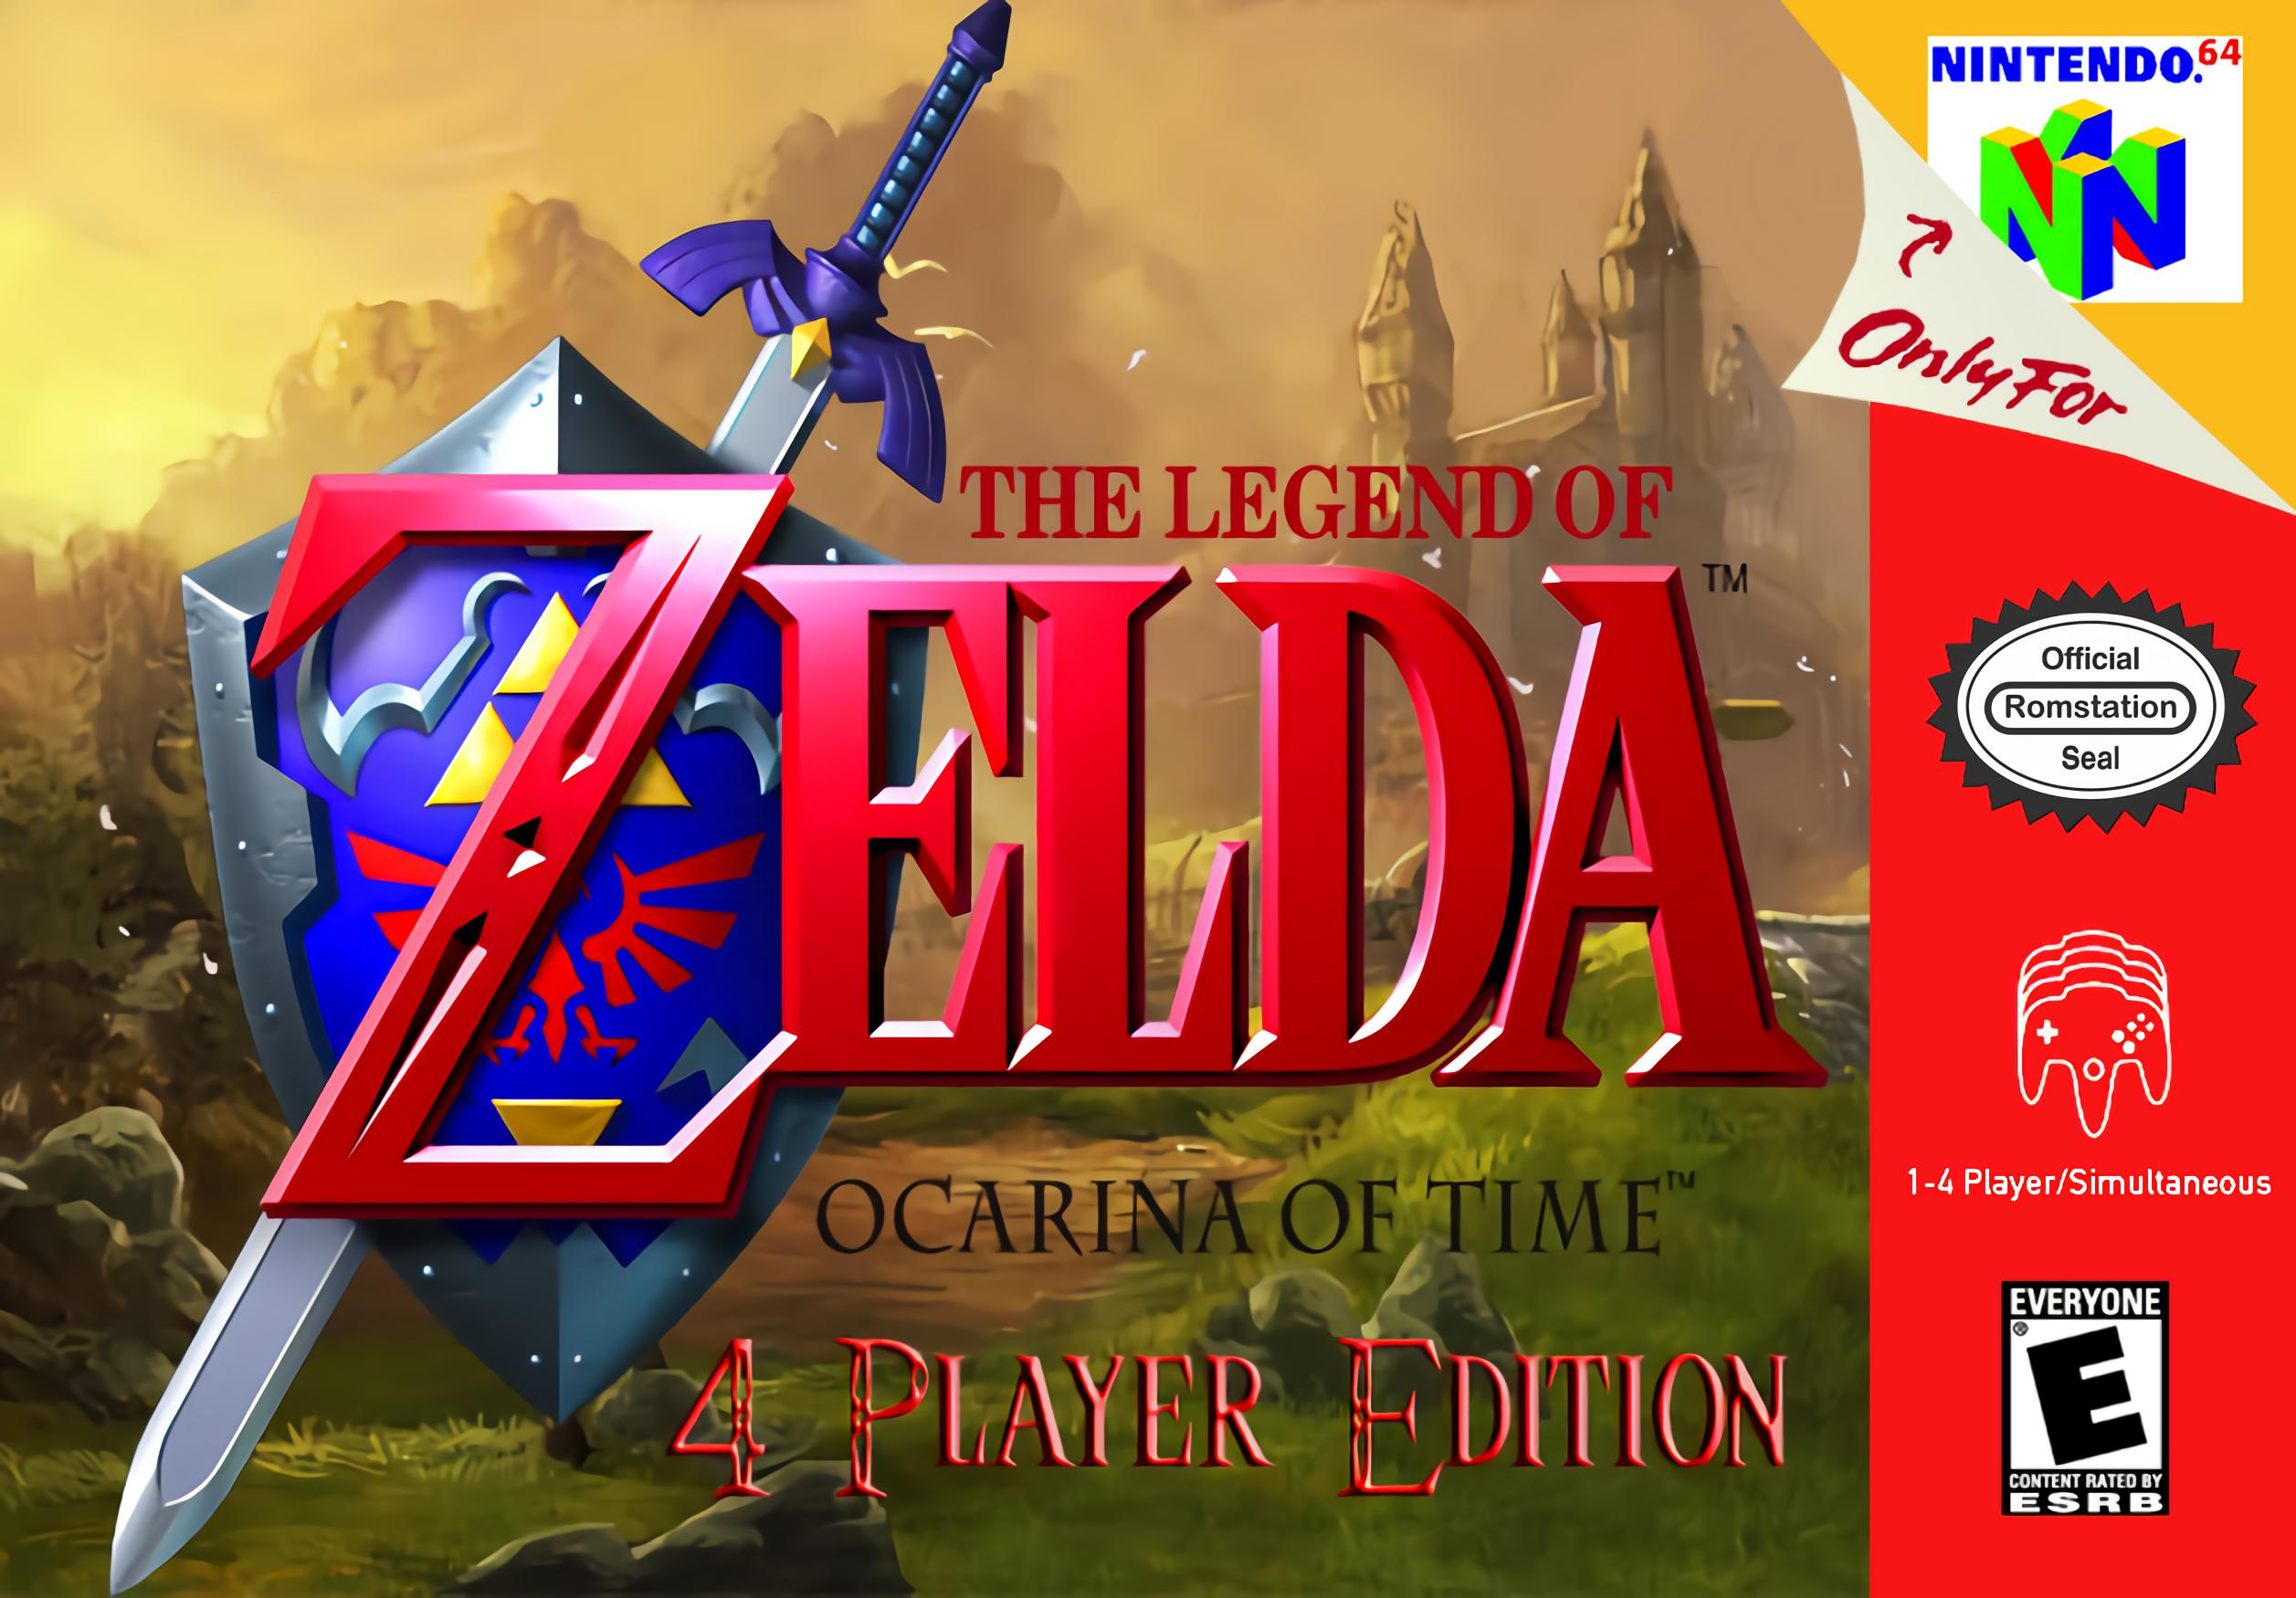 The Legend of Zelda : Ocarina of Time - 4 Player Edition